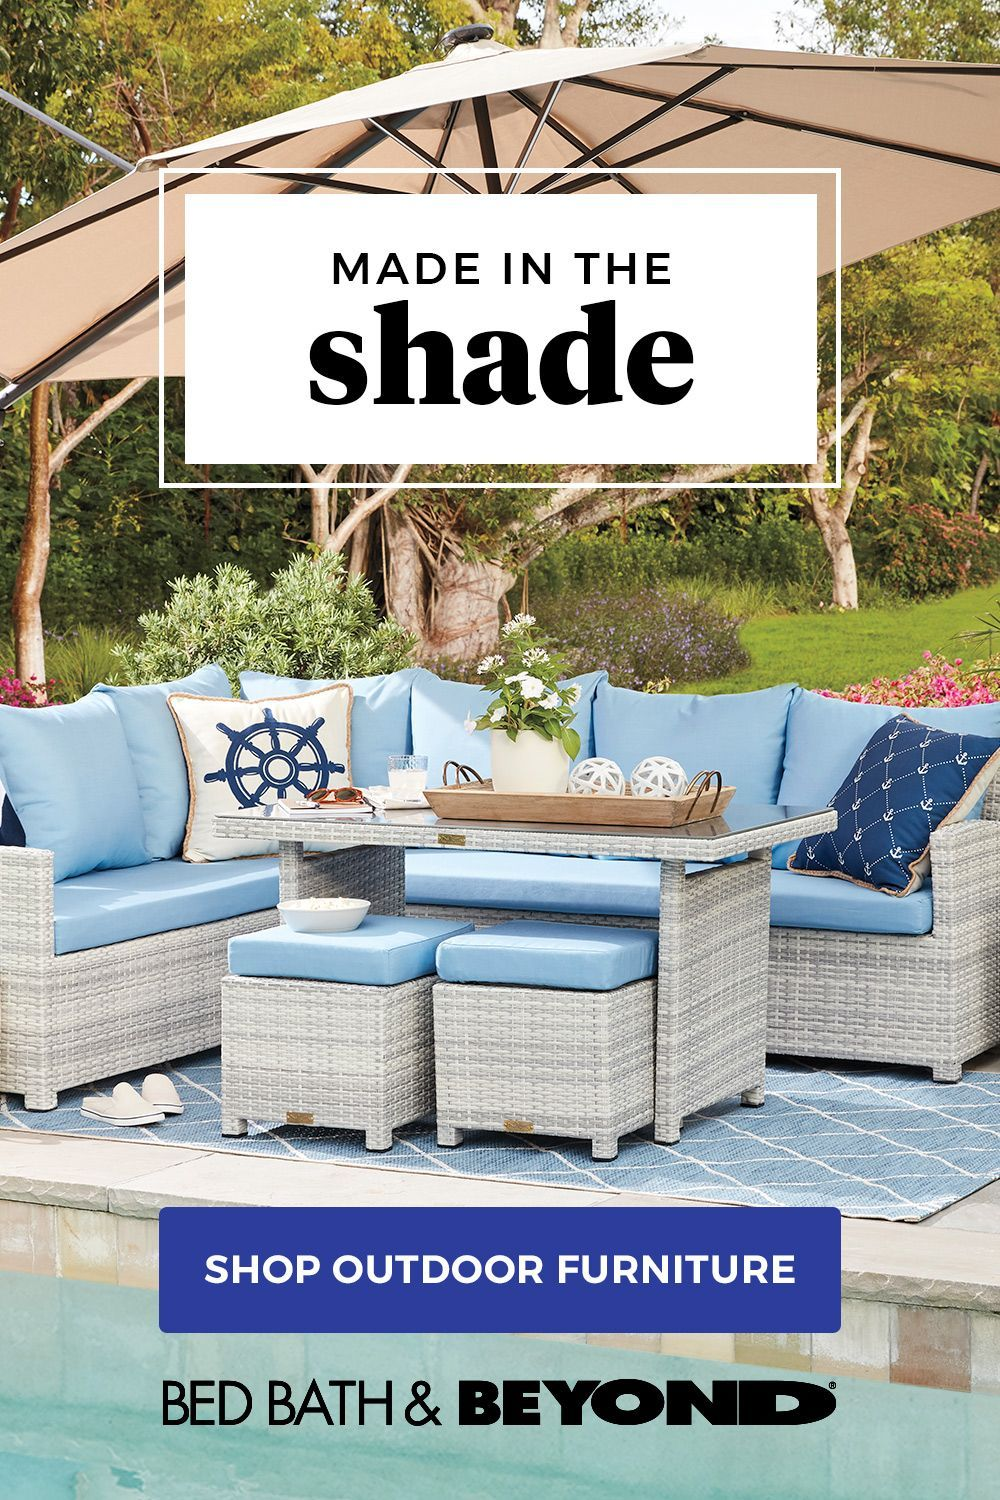 Staycation In The Backyard Build Your Outdoor Escape With Warm Weather Furnishings Like Outdoor Furniture Sets Rustic Bedroom Furniture Backyard Patio Designs